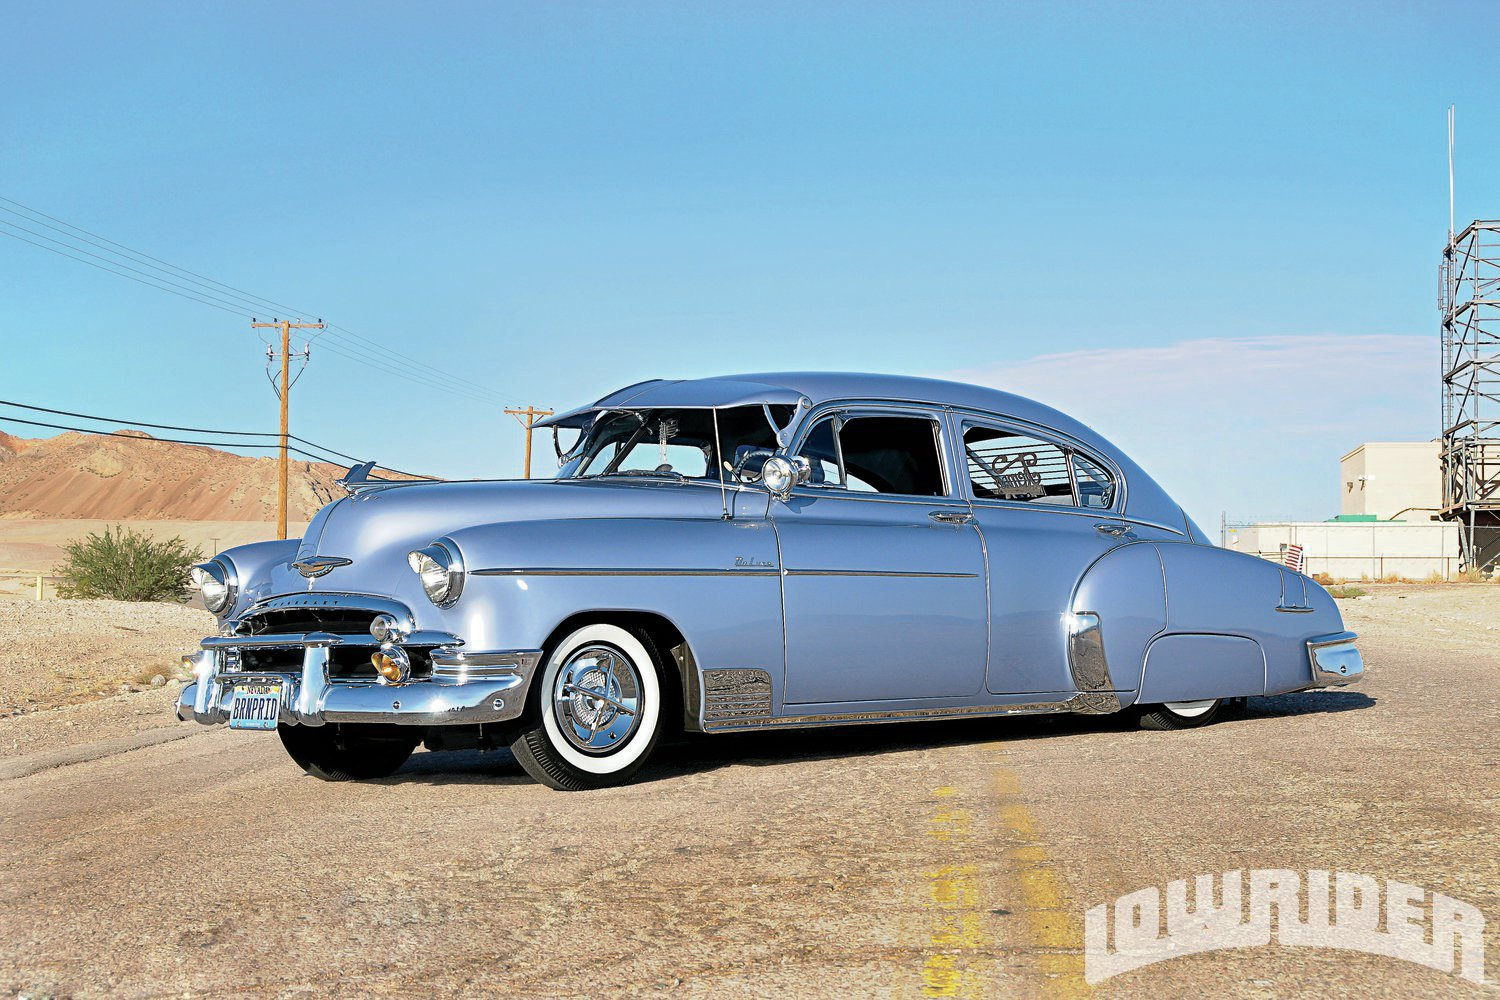 1950 Archives - Lowrider